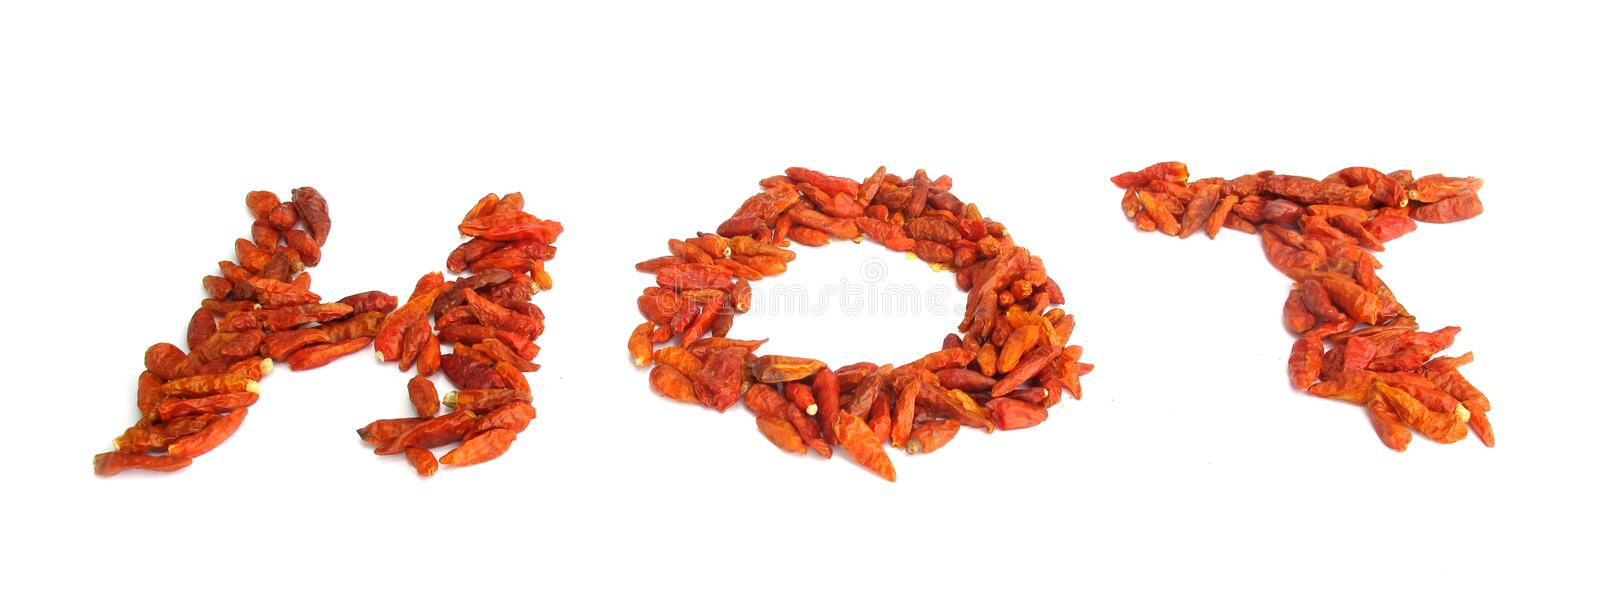 Download Dried Chili Peppers Paprika Hot Stock Photo - Image: 10410360